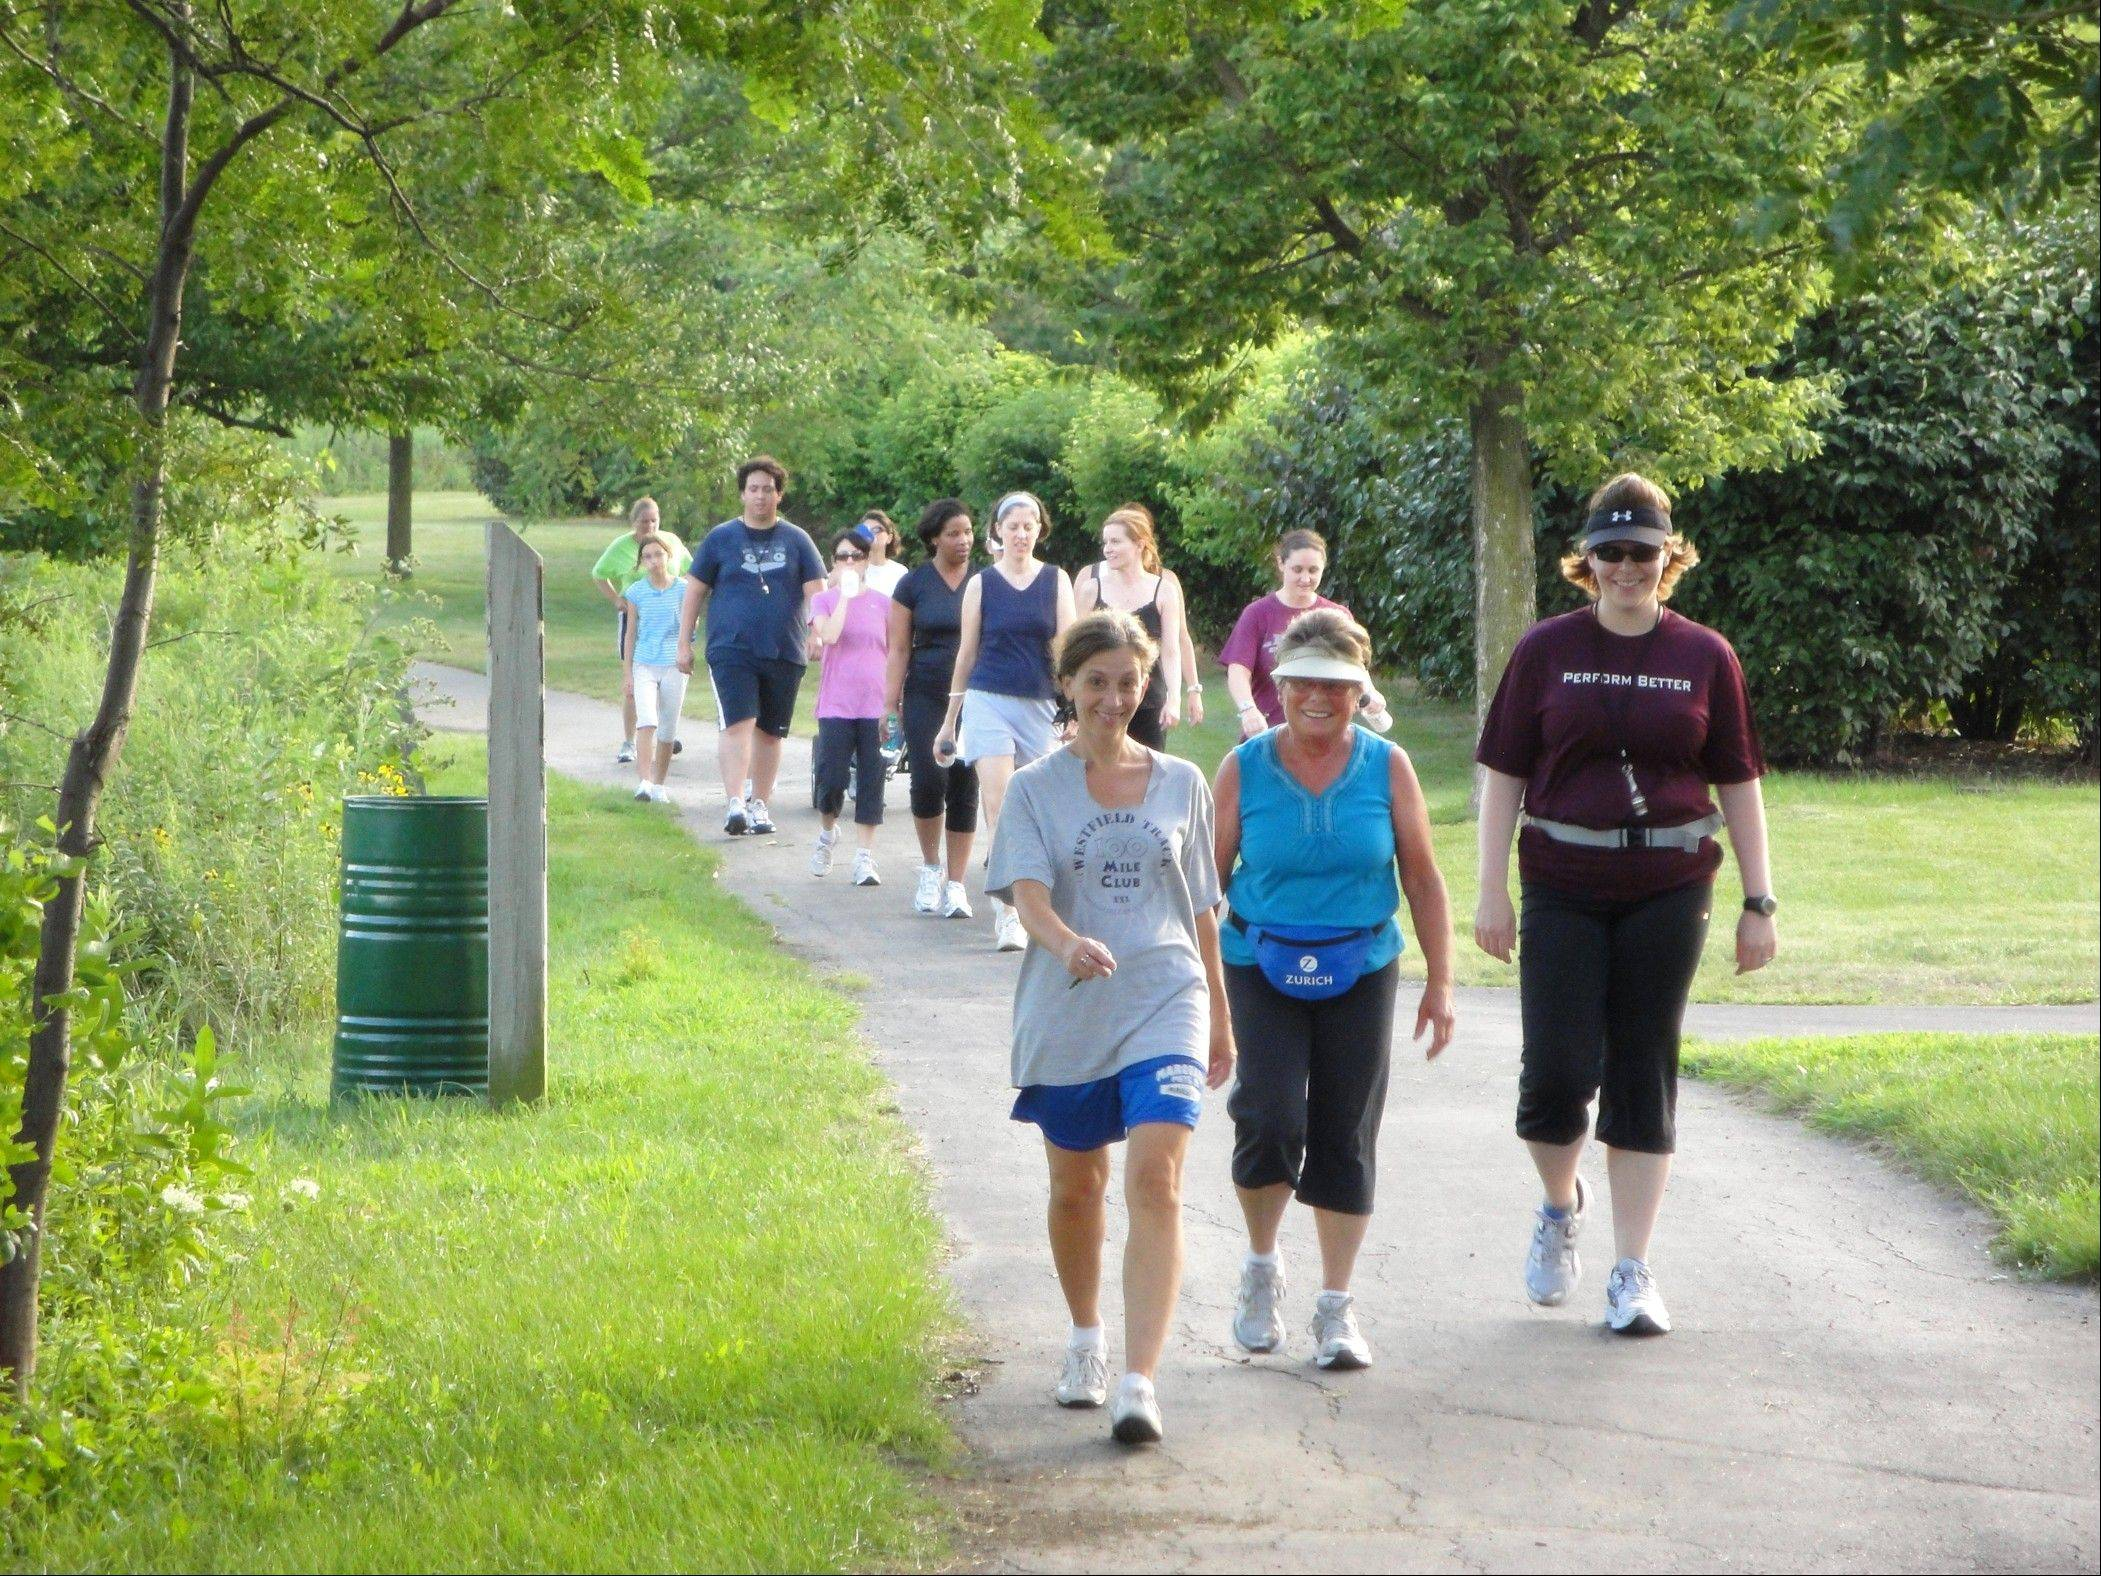 The Bloomingdale Park District's inaugural walk-to-run program helps participants safely train for a 5K.